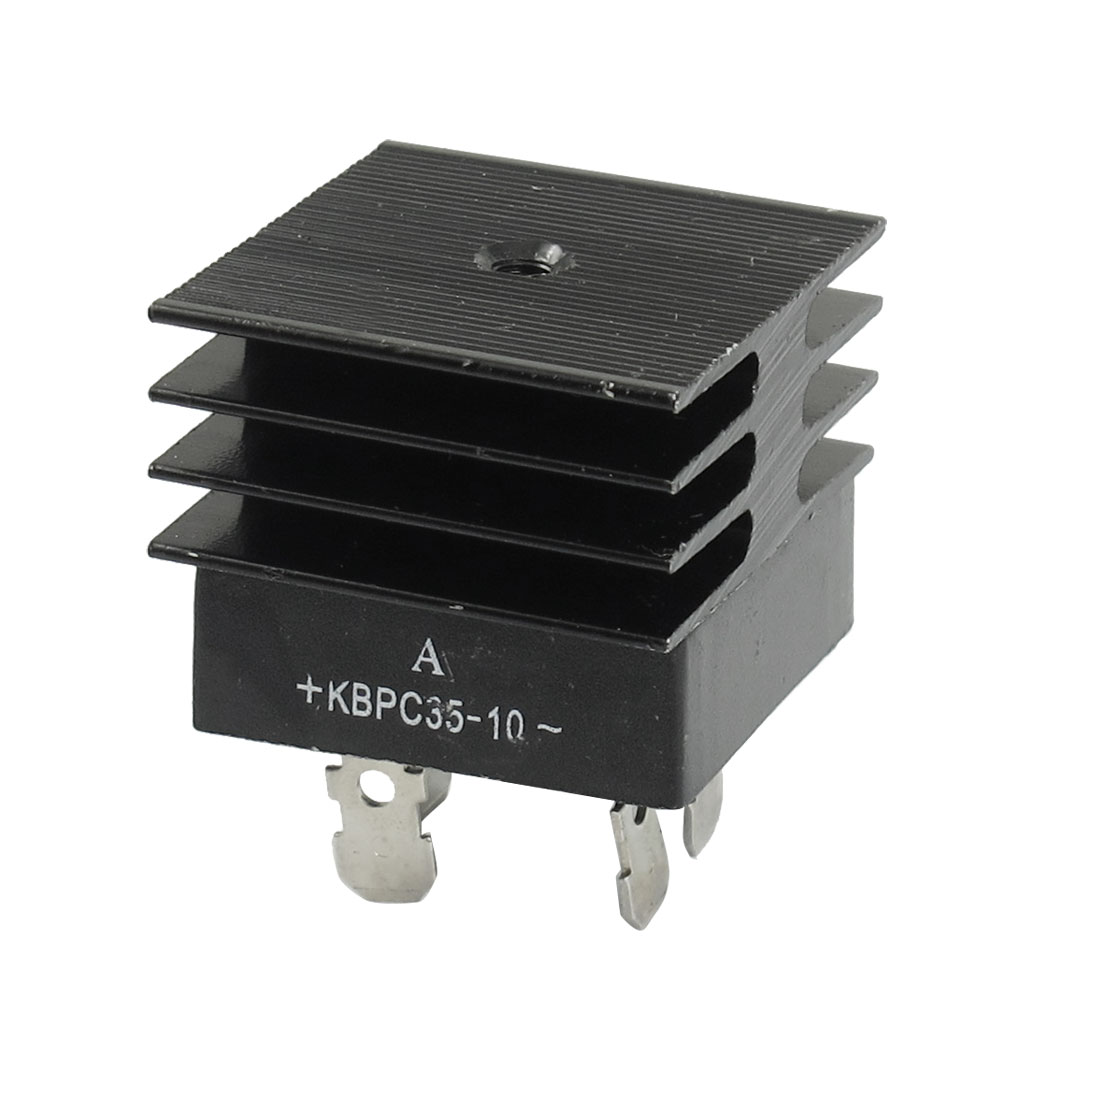 KBPC35-10 35A 1KV Single Phase Bridge Rectifier Half-Wave Black w Heatsink